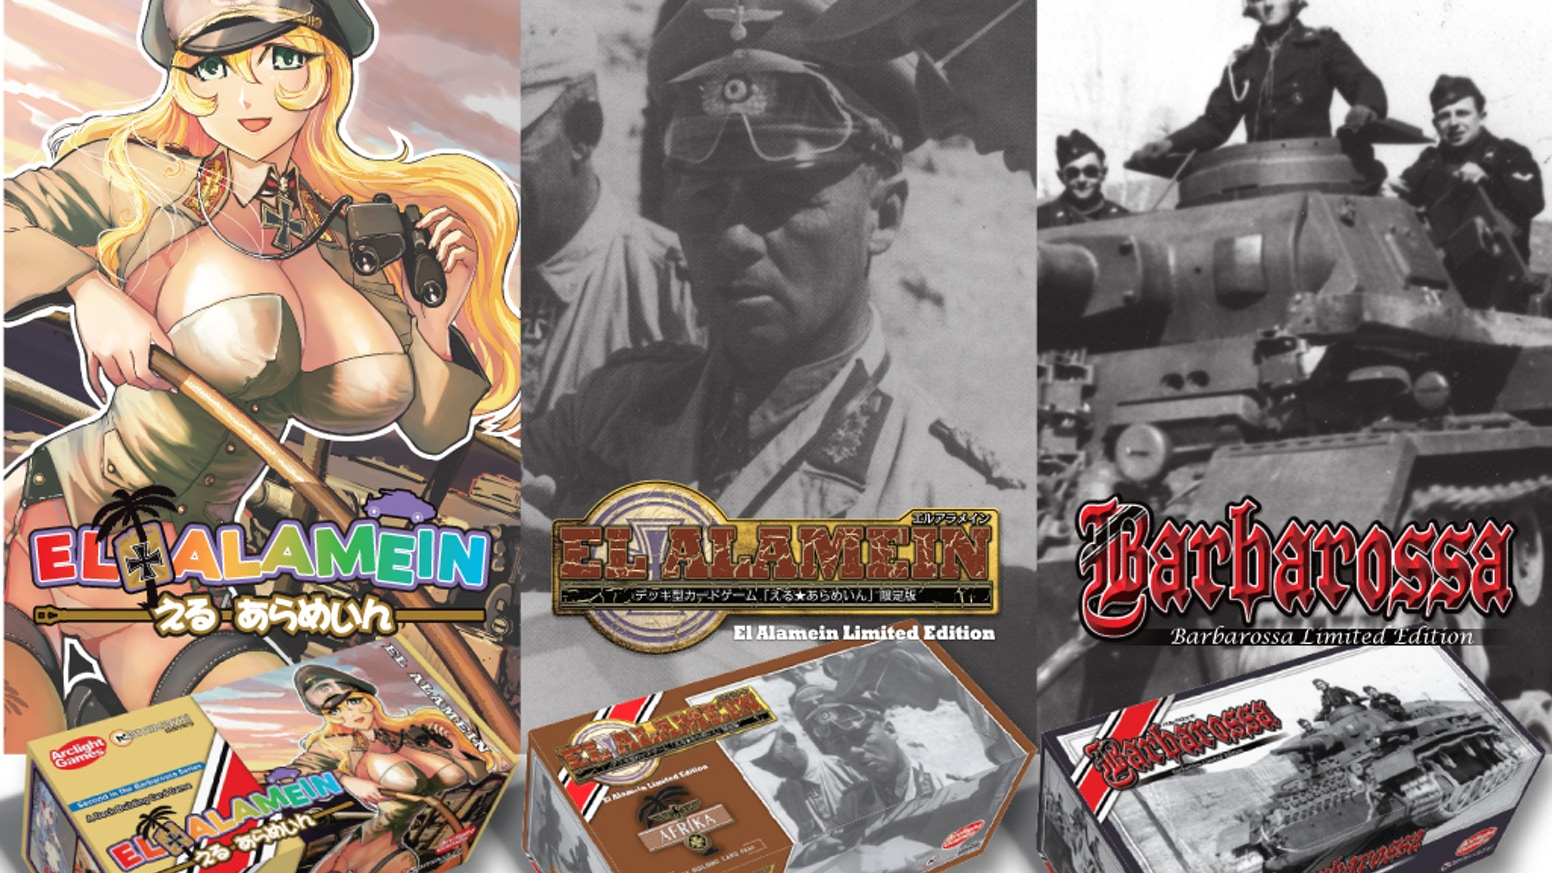 8736fa0c8416 El Alamein is a deck building card game set in a fictional WWII universe  where cute